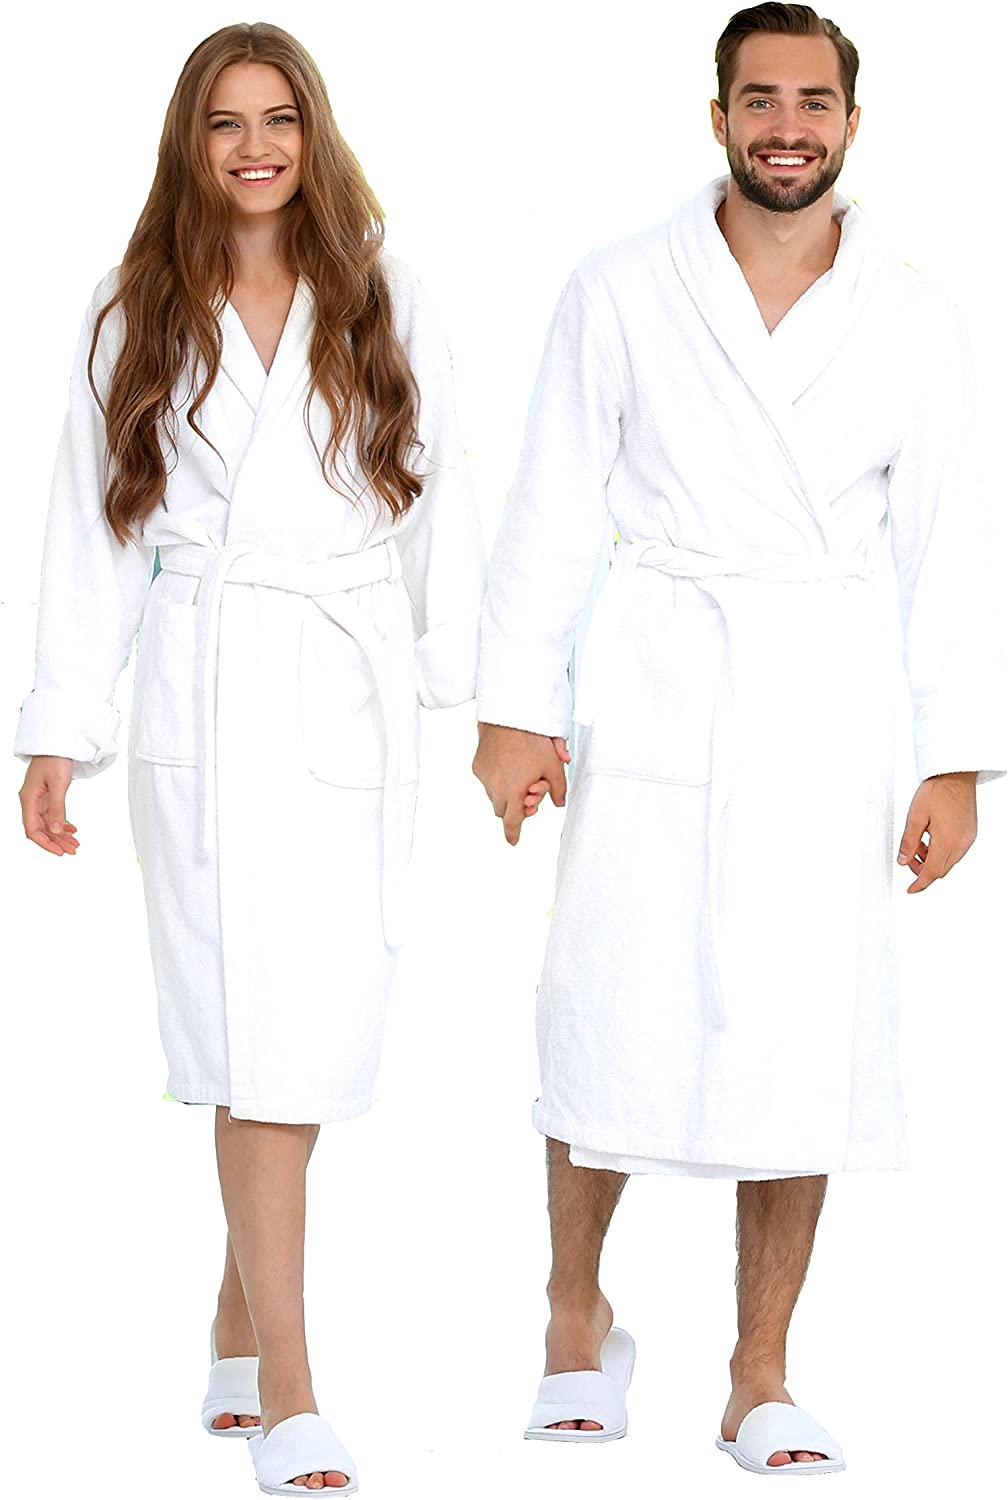 Luxury Bathrobe Towel, Spa Robe Combed Terry Cotton Organic Cloth for Men Women, Cotton Lightweight, Unisex White, Large (All Size Fit): Home & Kitchen